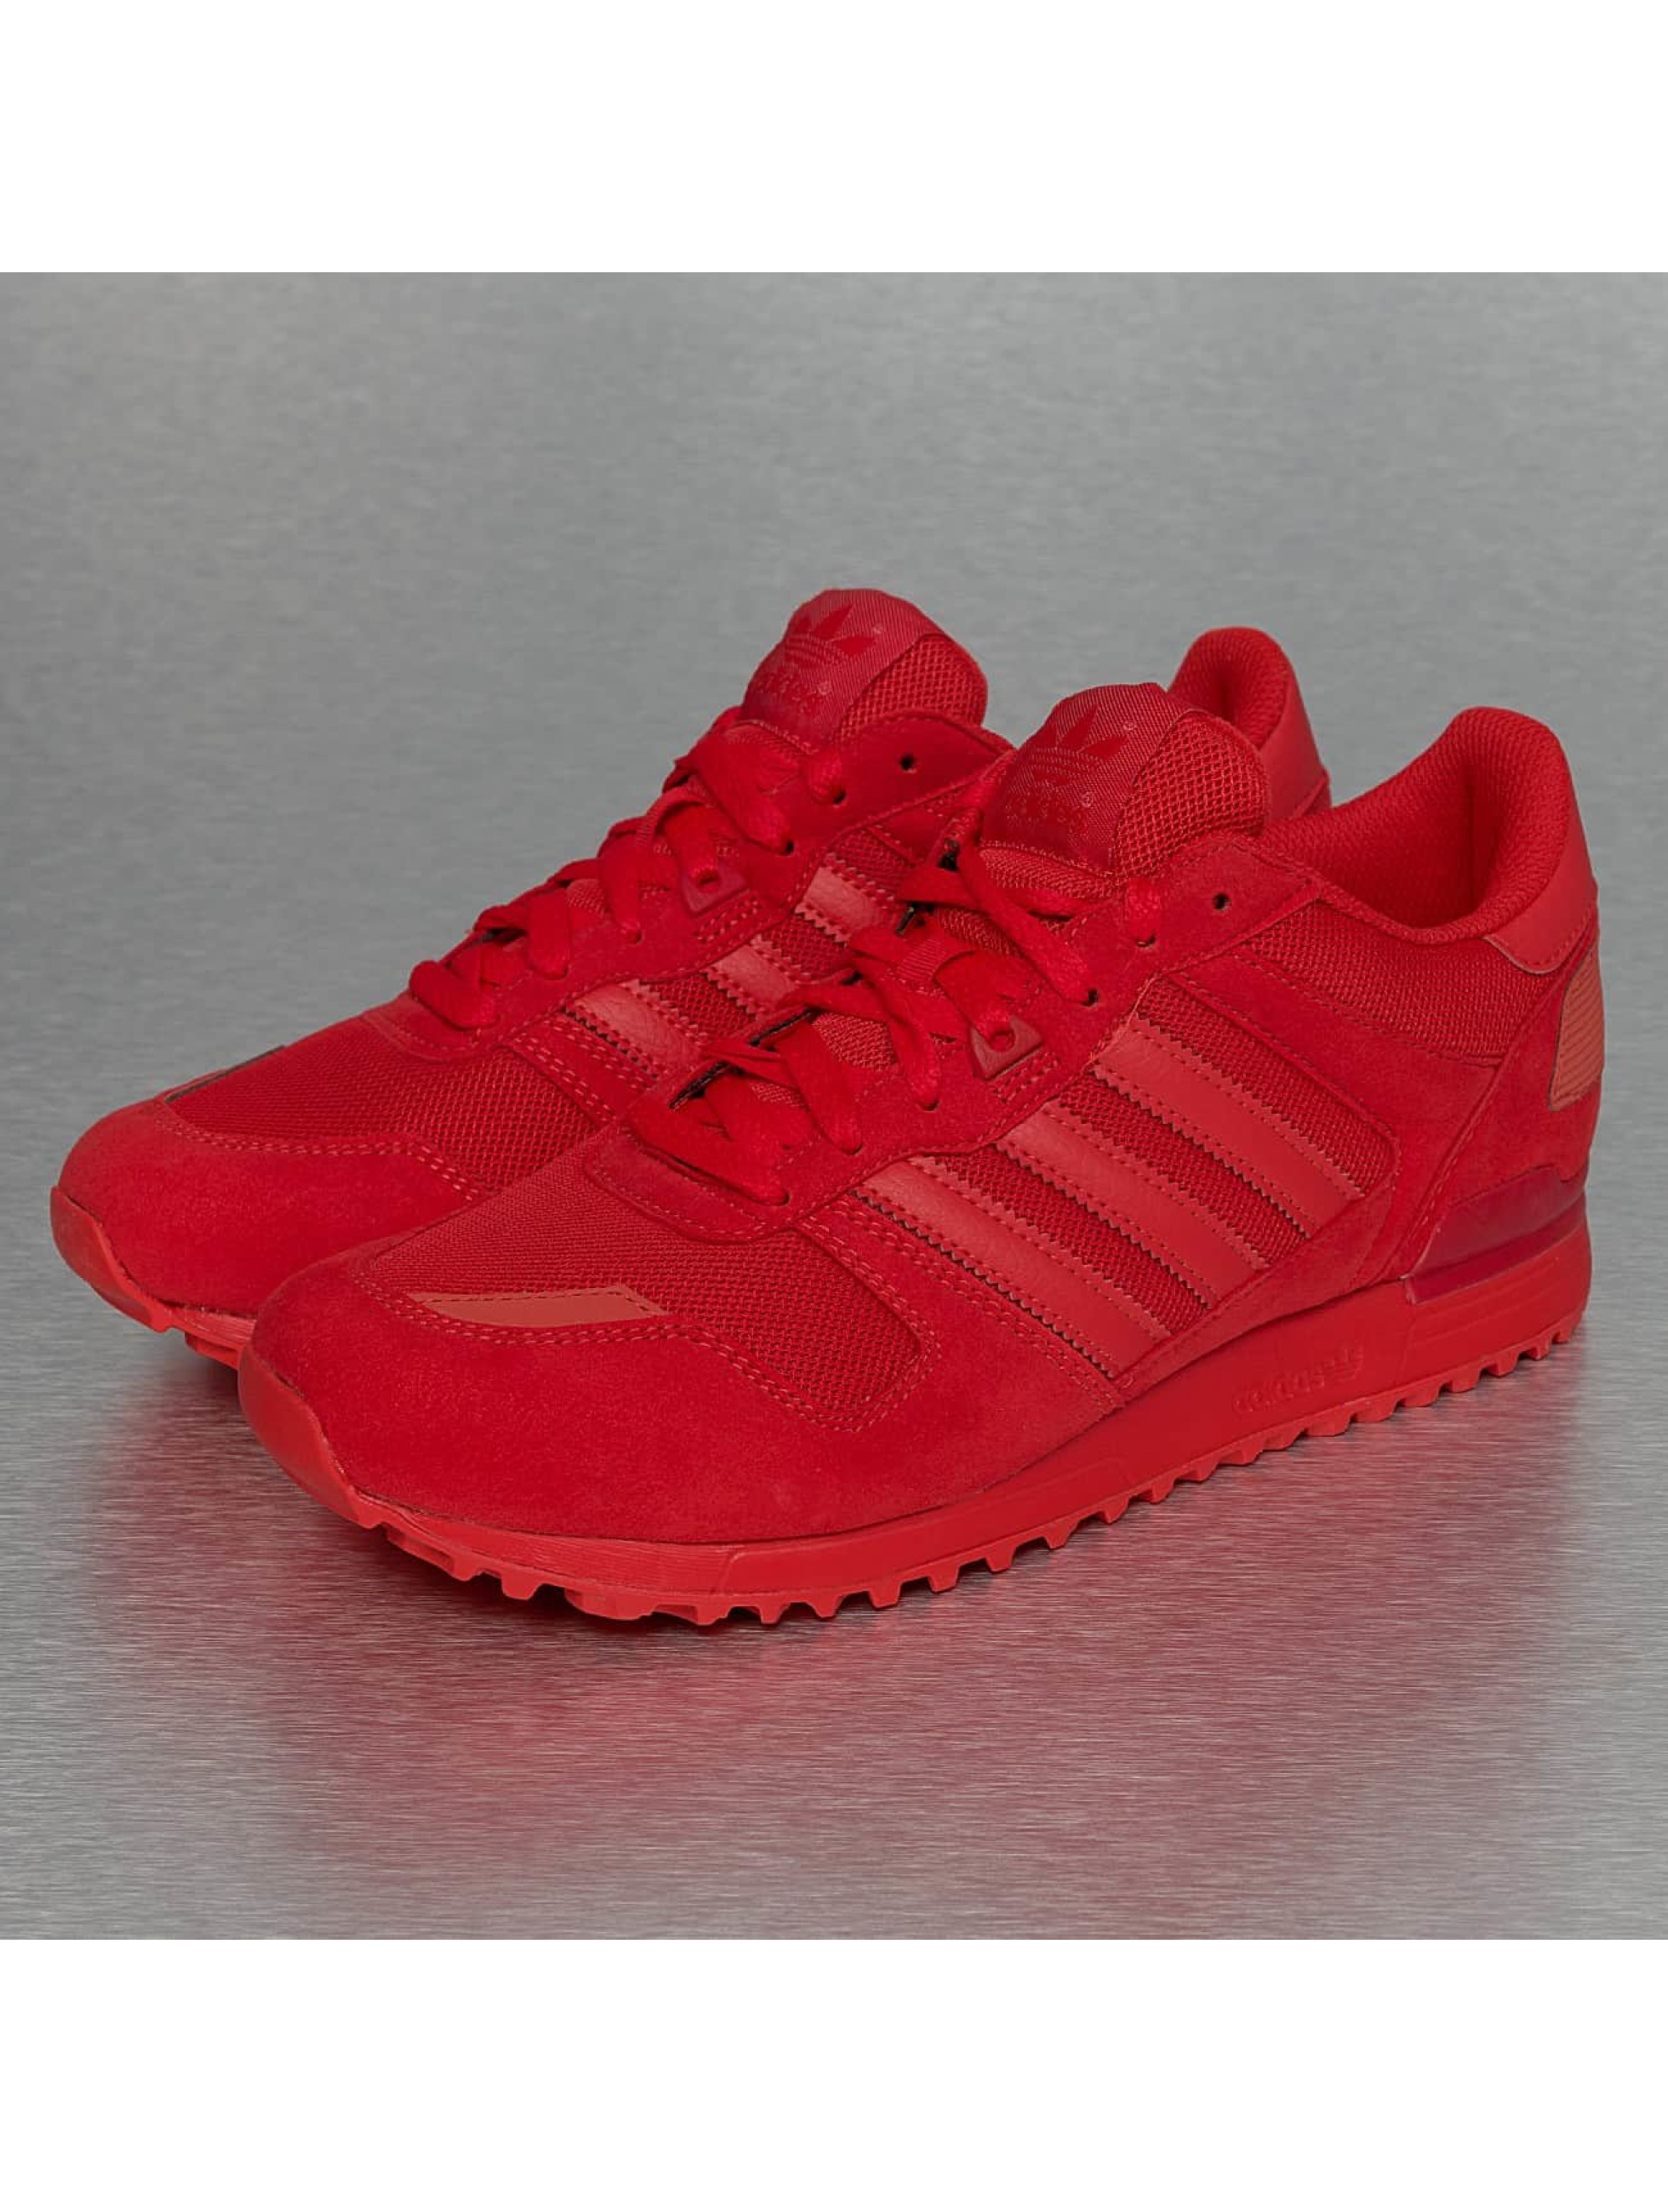 adidas zx 700 rot ibs. Black Bedroom Furniture Sets. Home Design Ideas